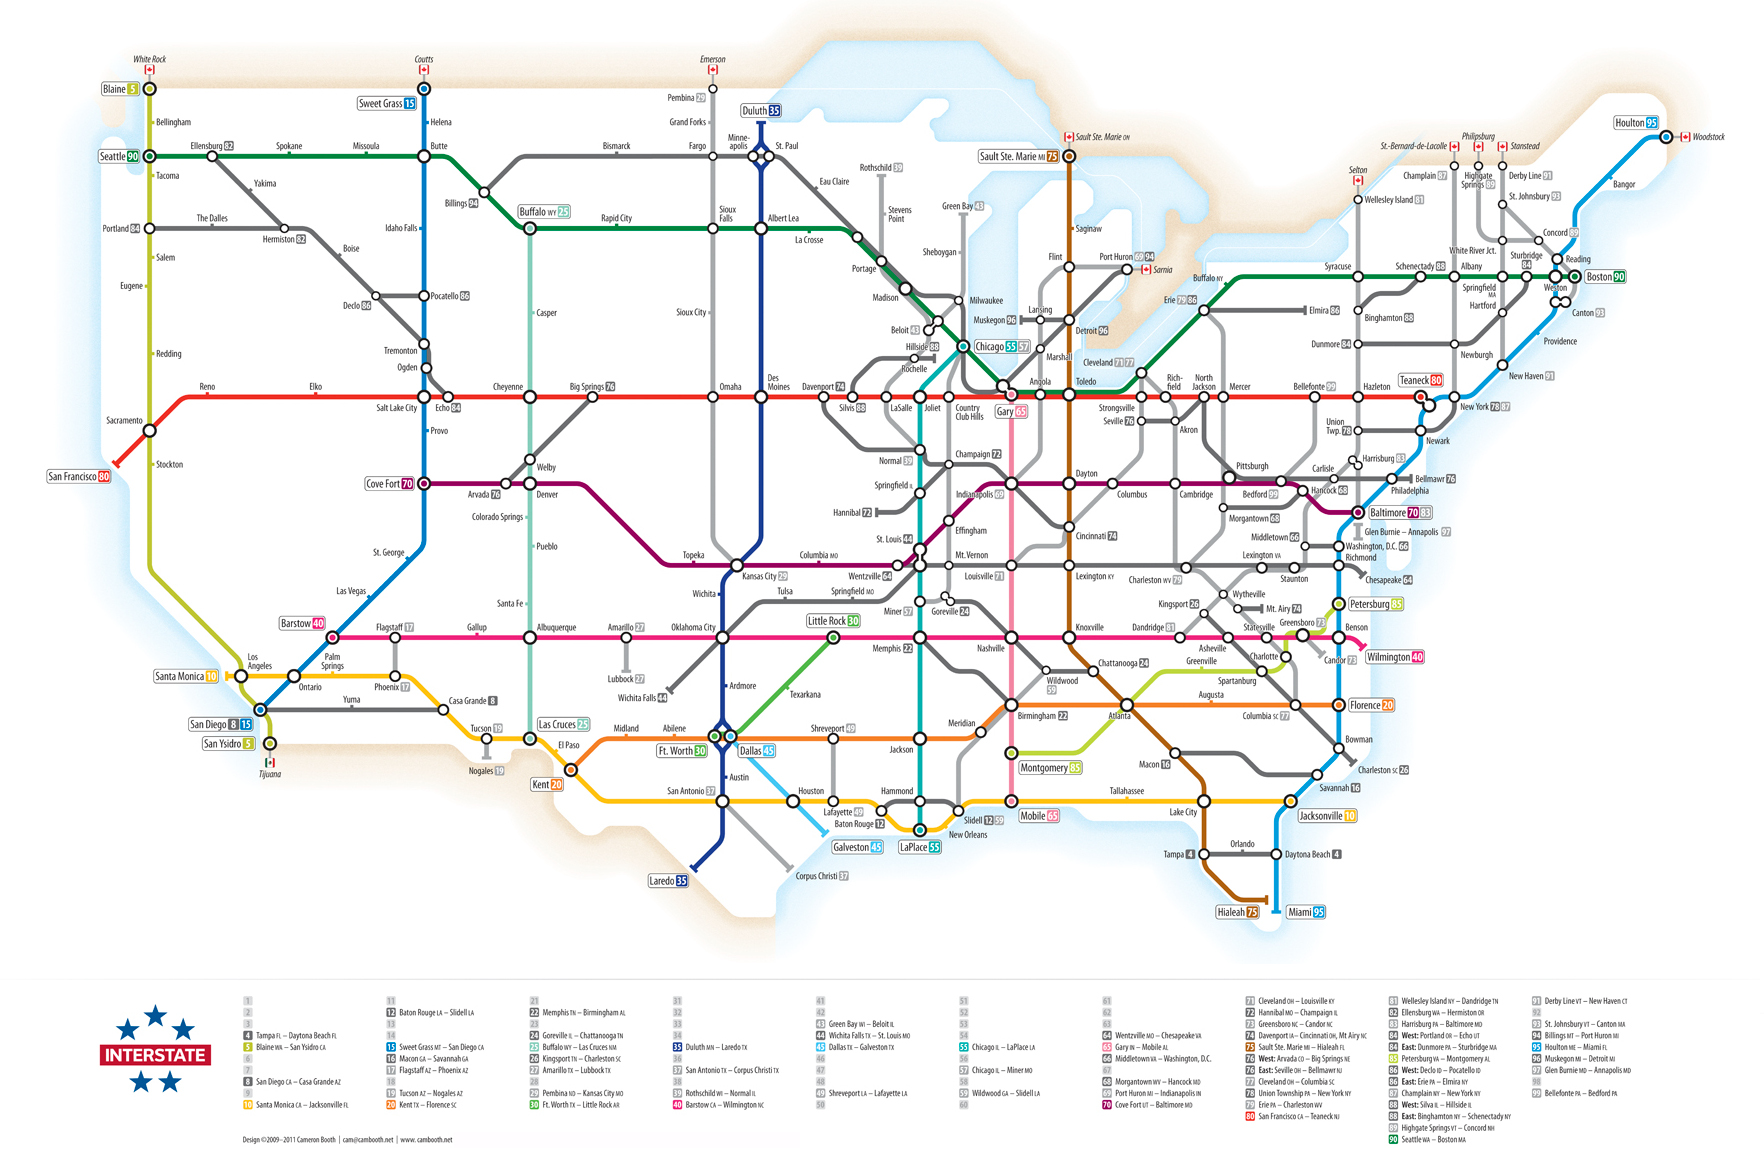 U.S. Interstate Highways, as a Transit Map